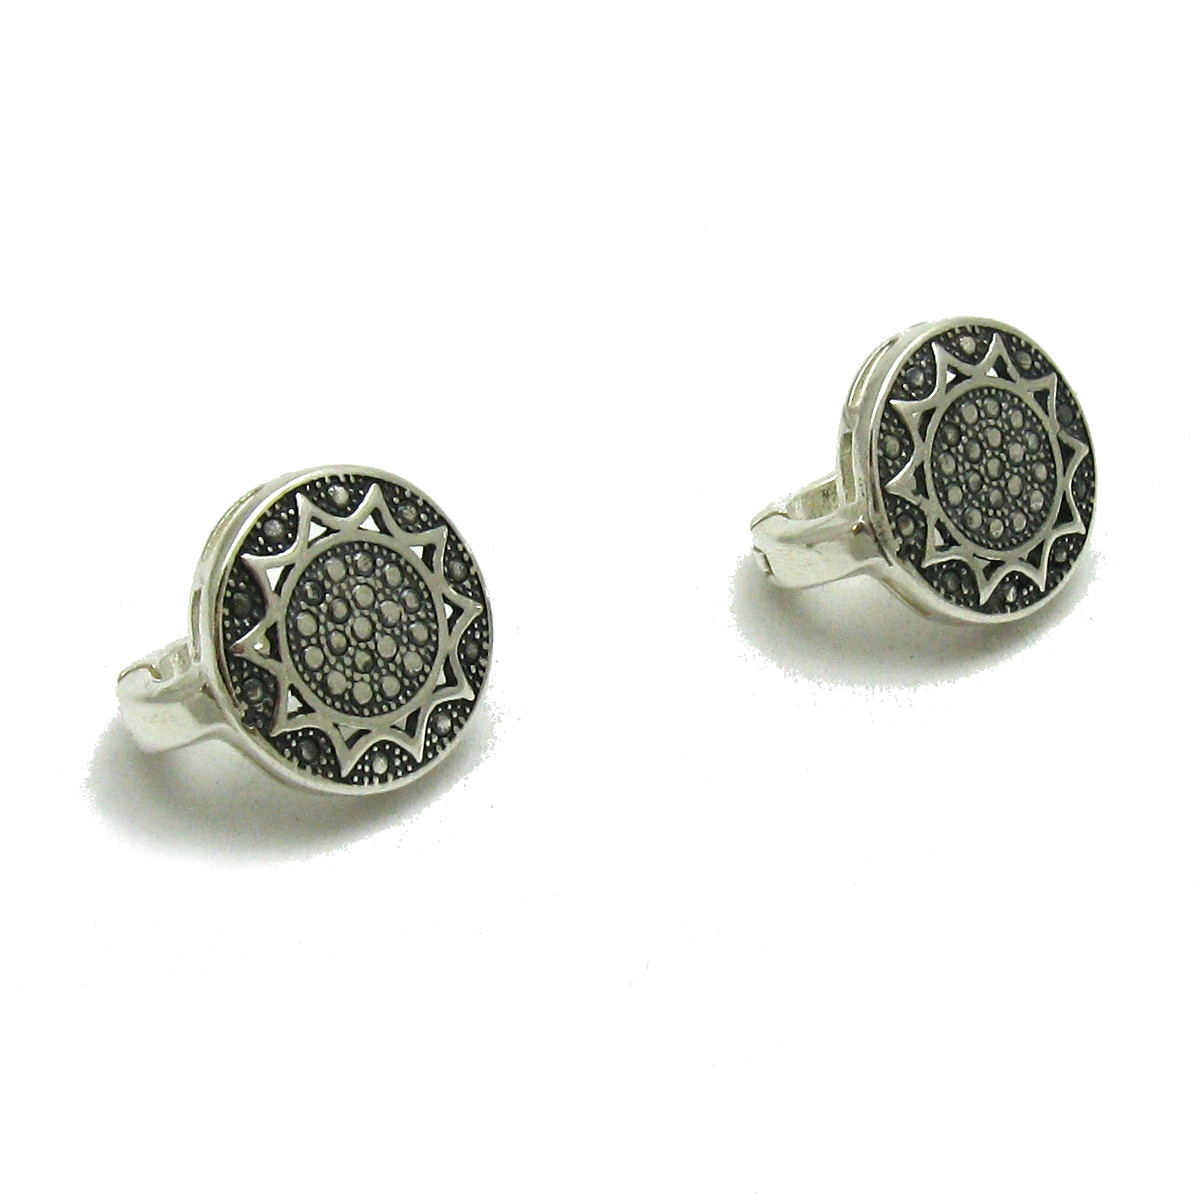 Silver earrings - E000628